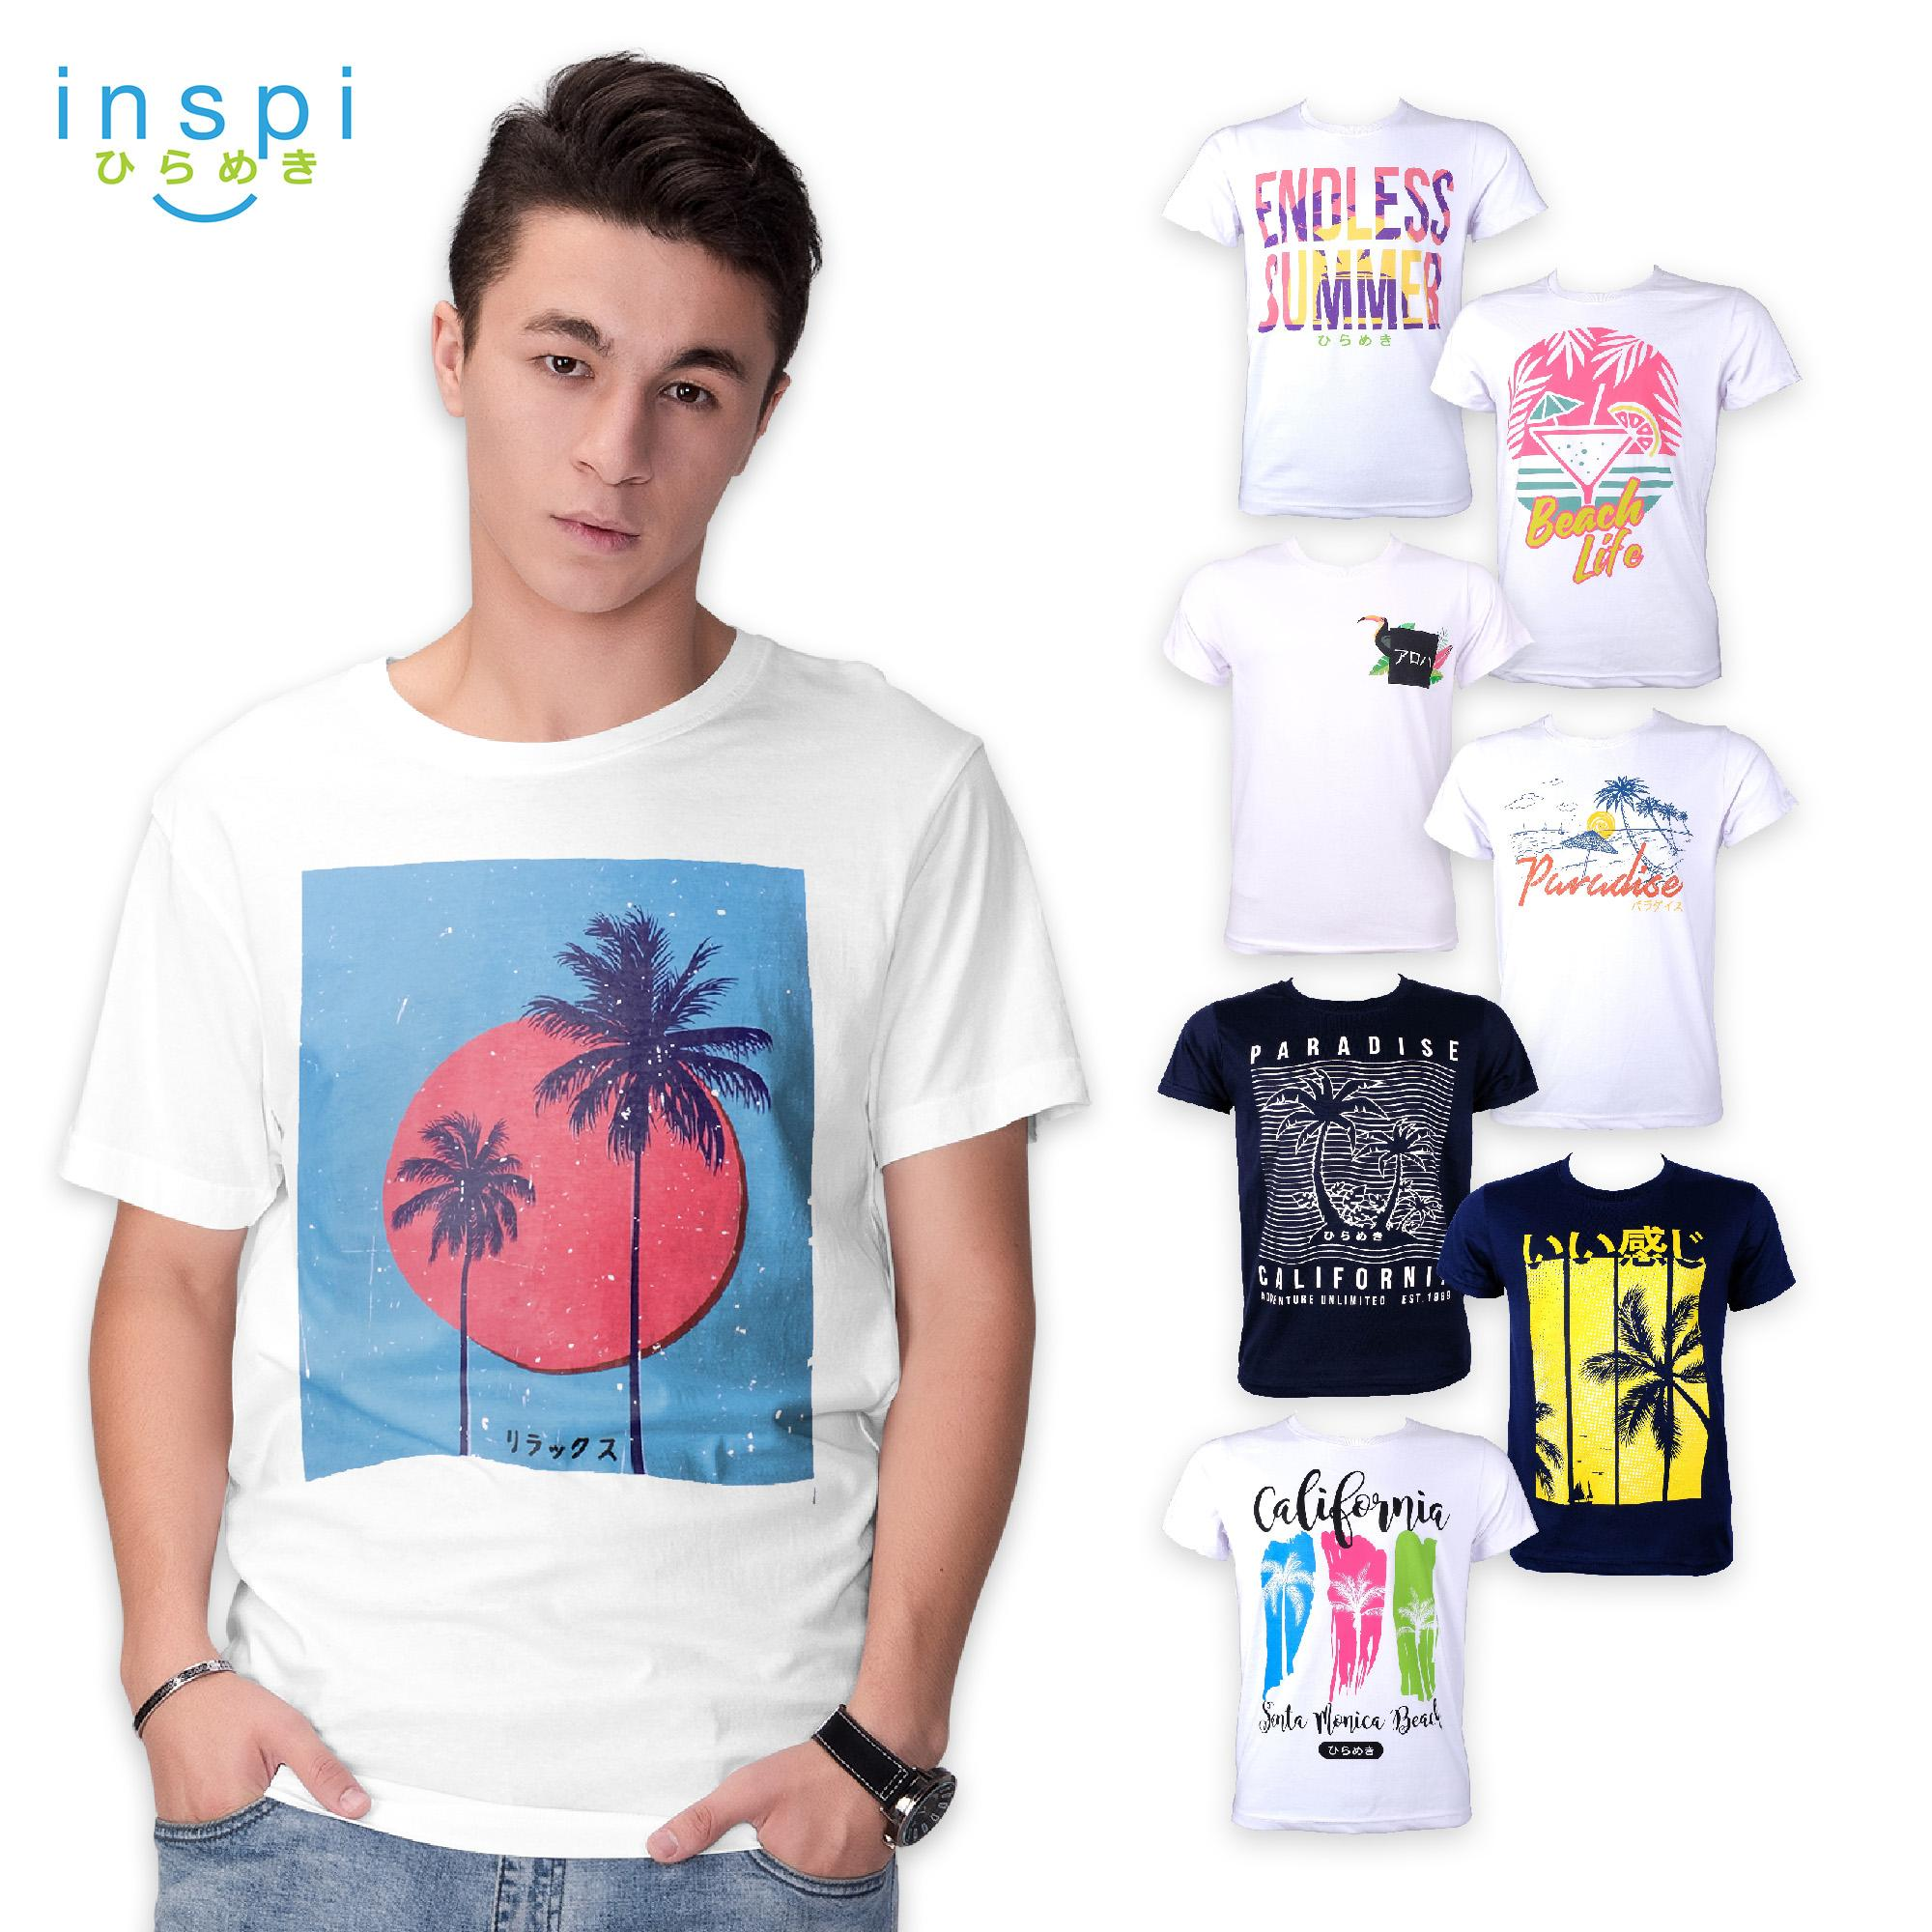 abcebe9a907 INSPI Tees Summer Collection tshirt printed graphic tee Mens t shirt shirts  for men tshirts sale